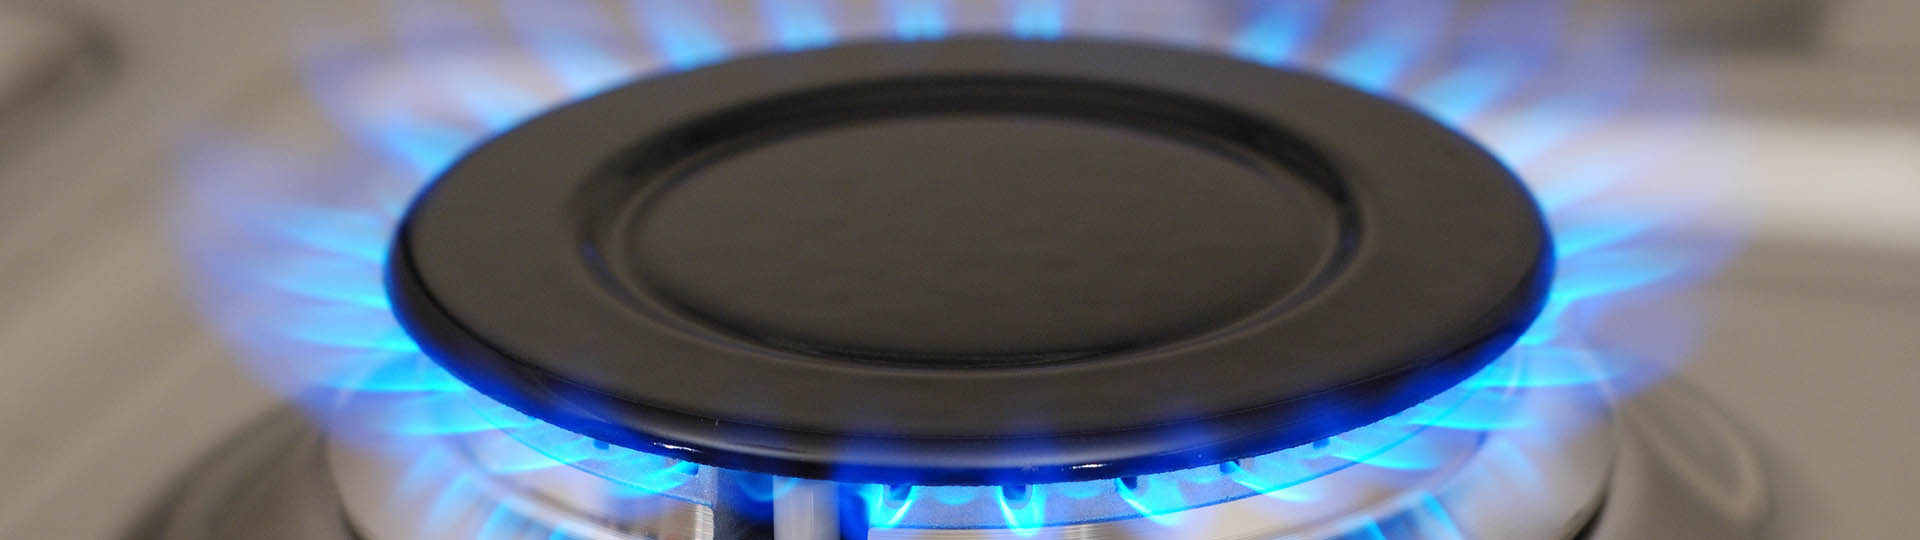 zoomed in frontal view of a propane burner